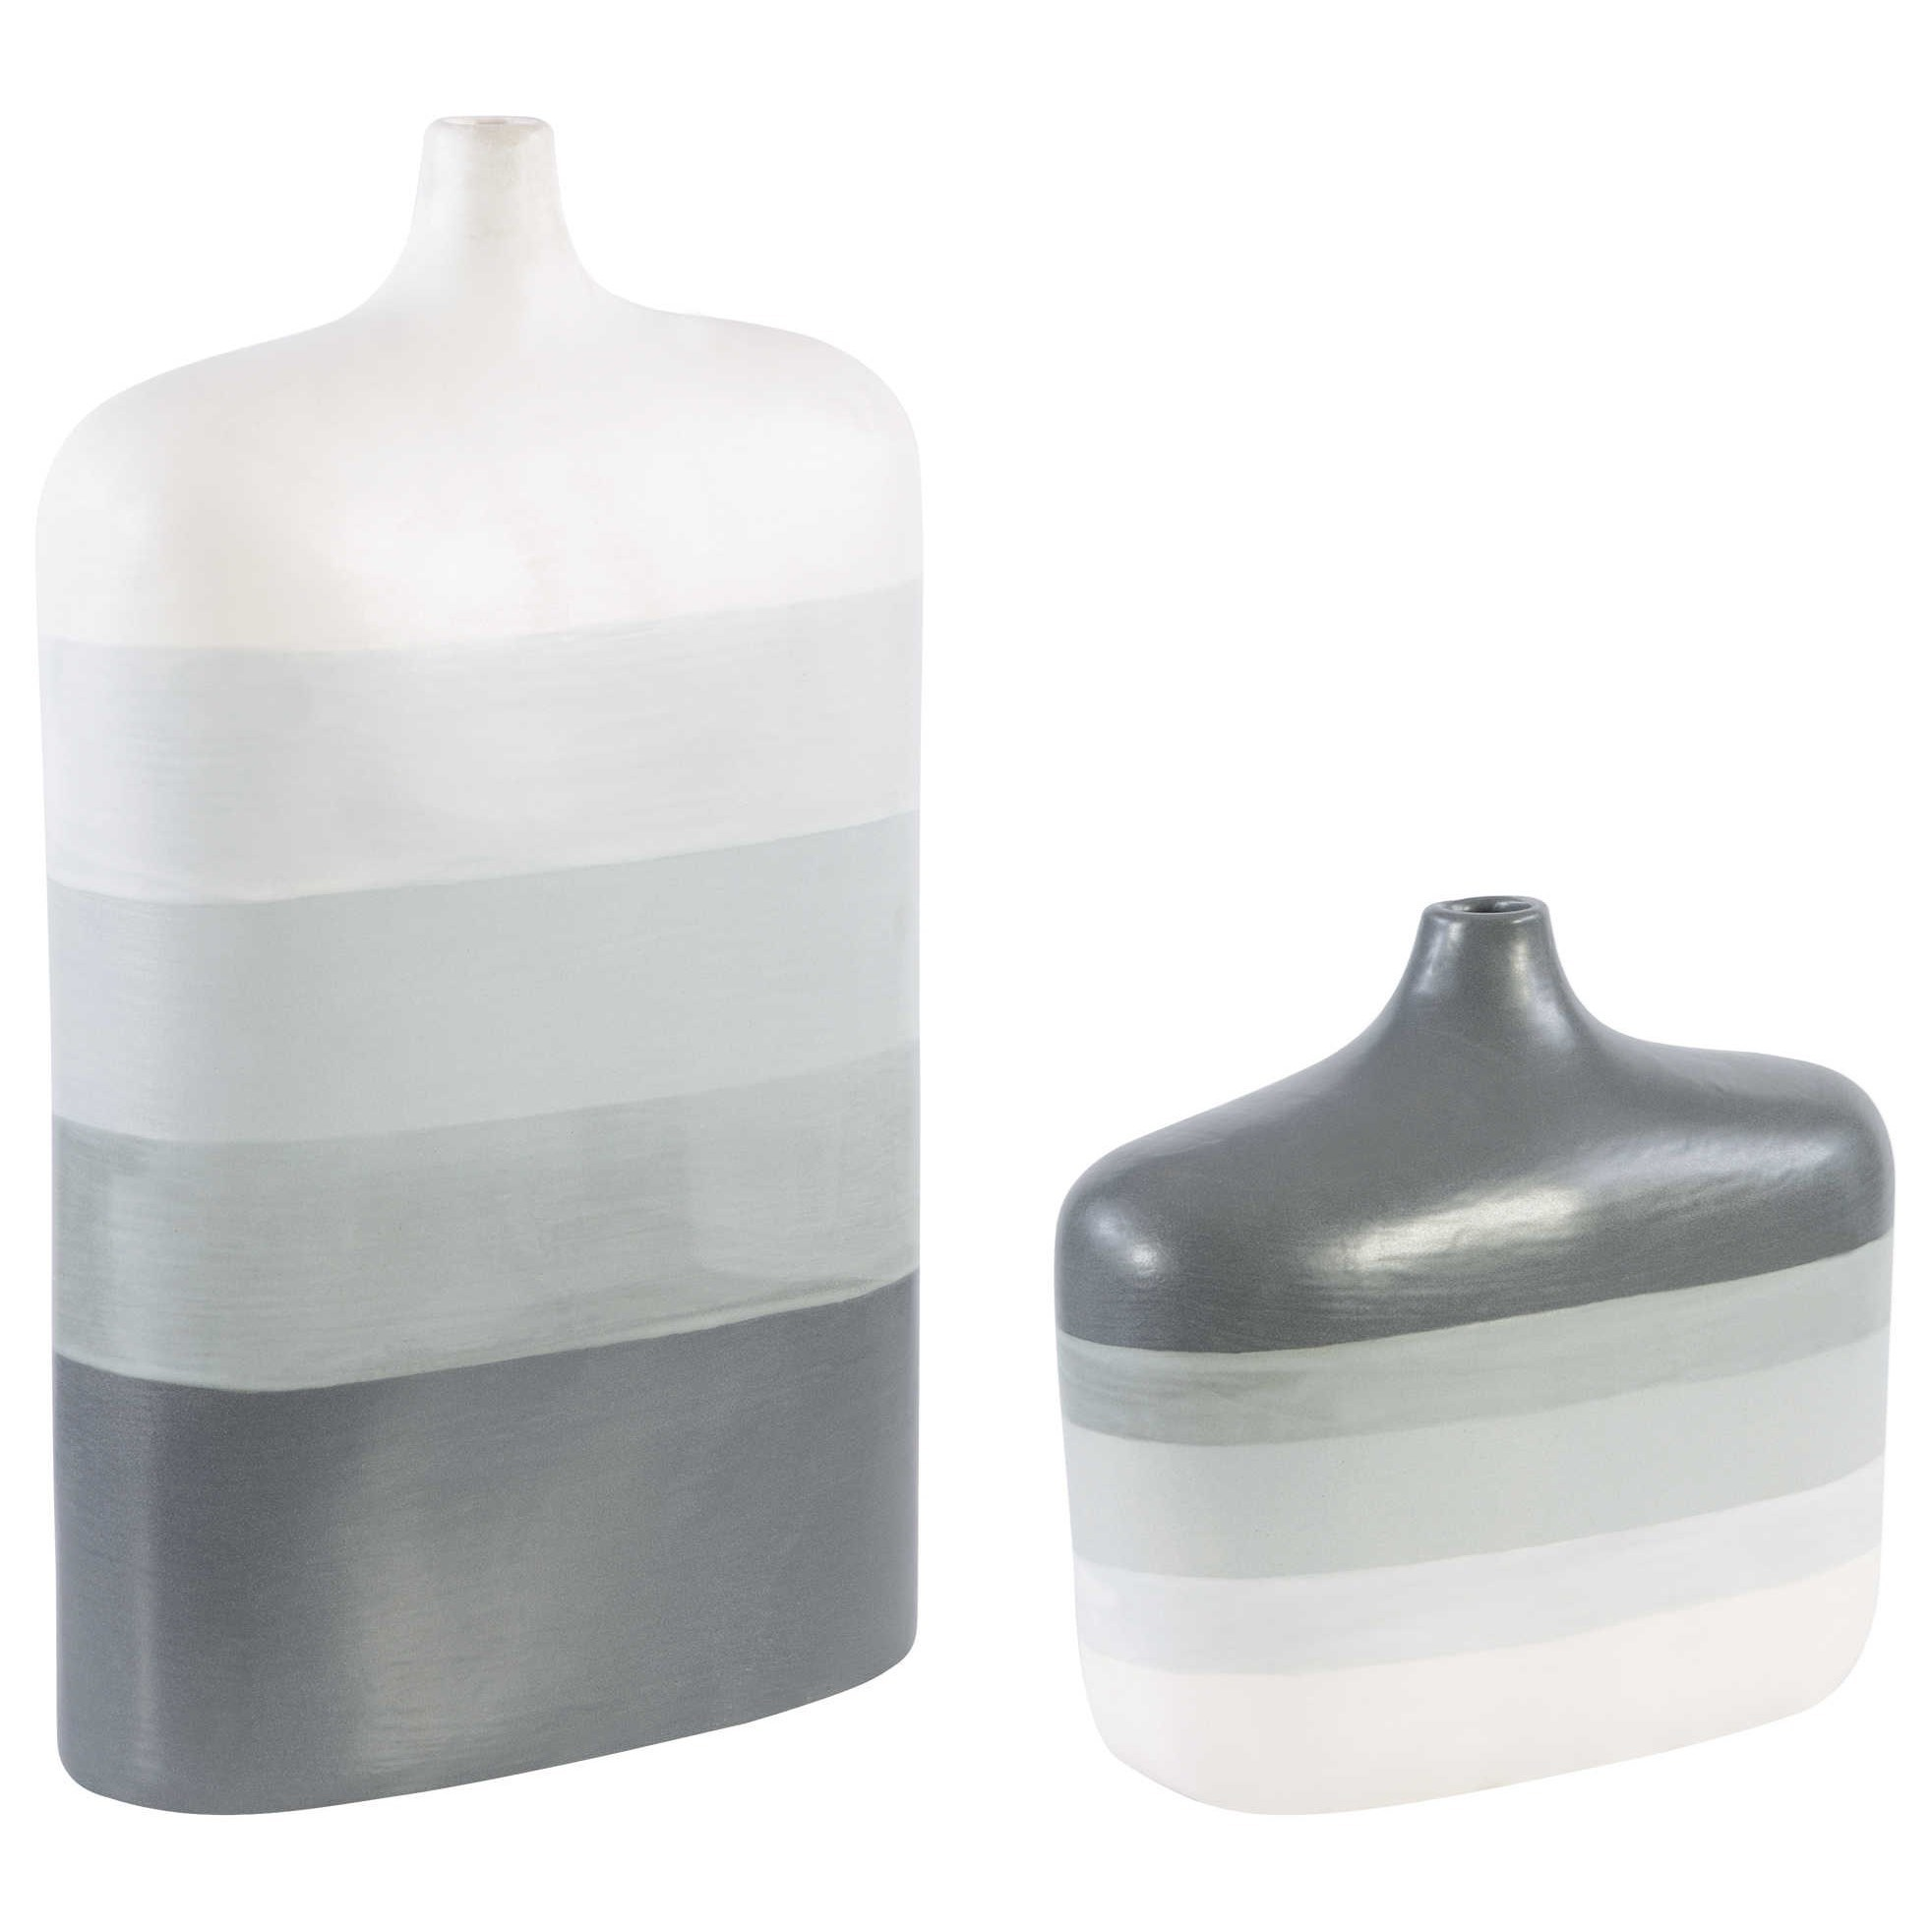 Accessories - Vases and Urns Guevara Striped Gray Vases, S/2 by Uttermost at Mueller Furniture